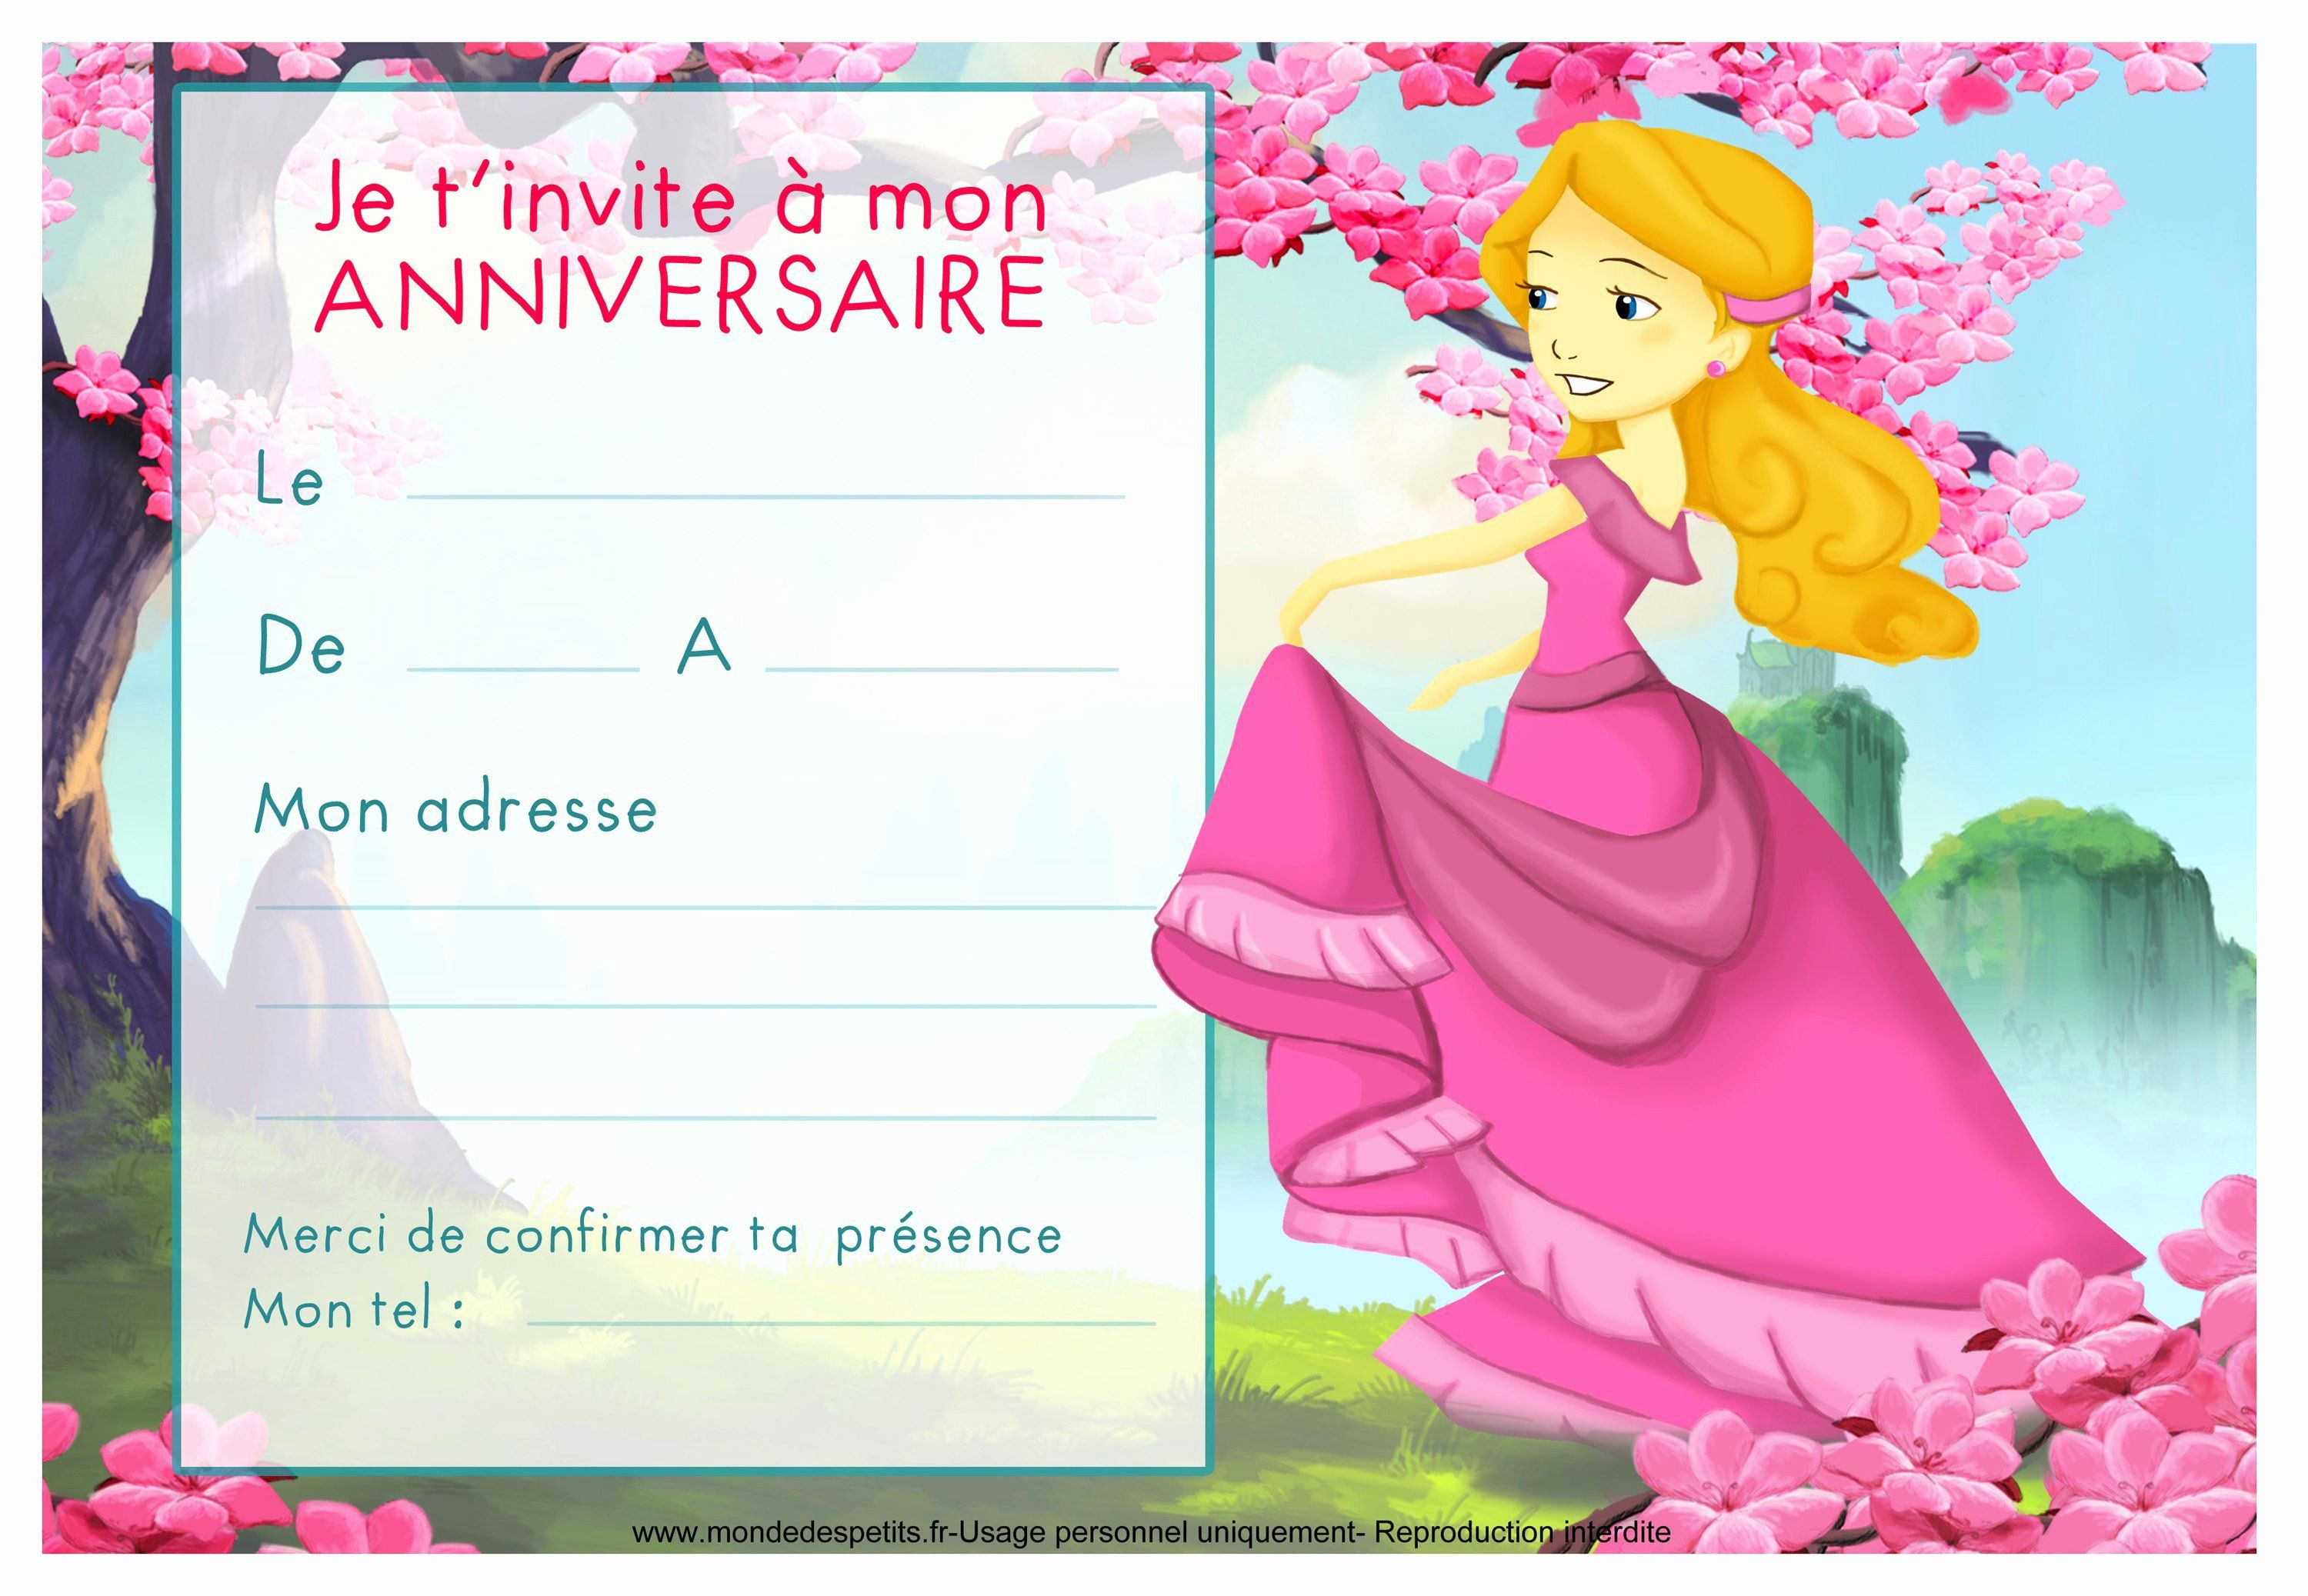 Awesome Invitation Anniversaire Fille 5 Ans Gratuite à Imprimer | Invitation anniversaire ...